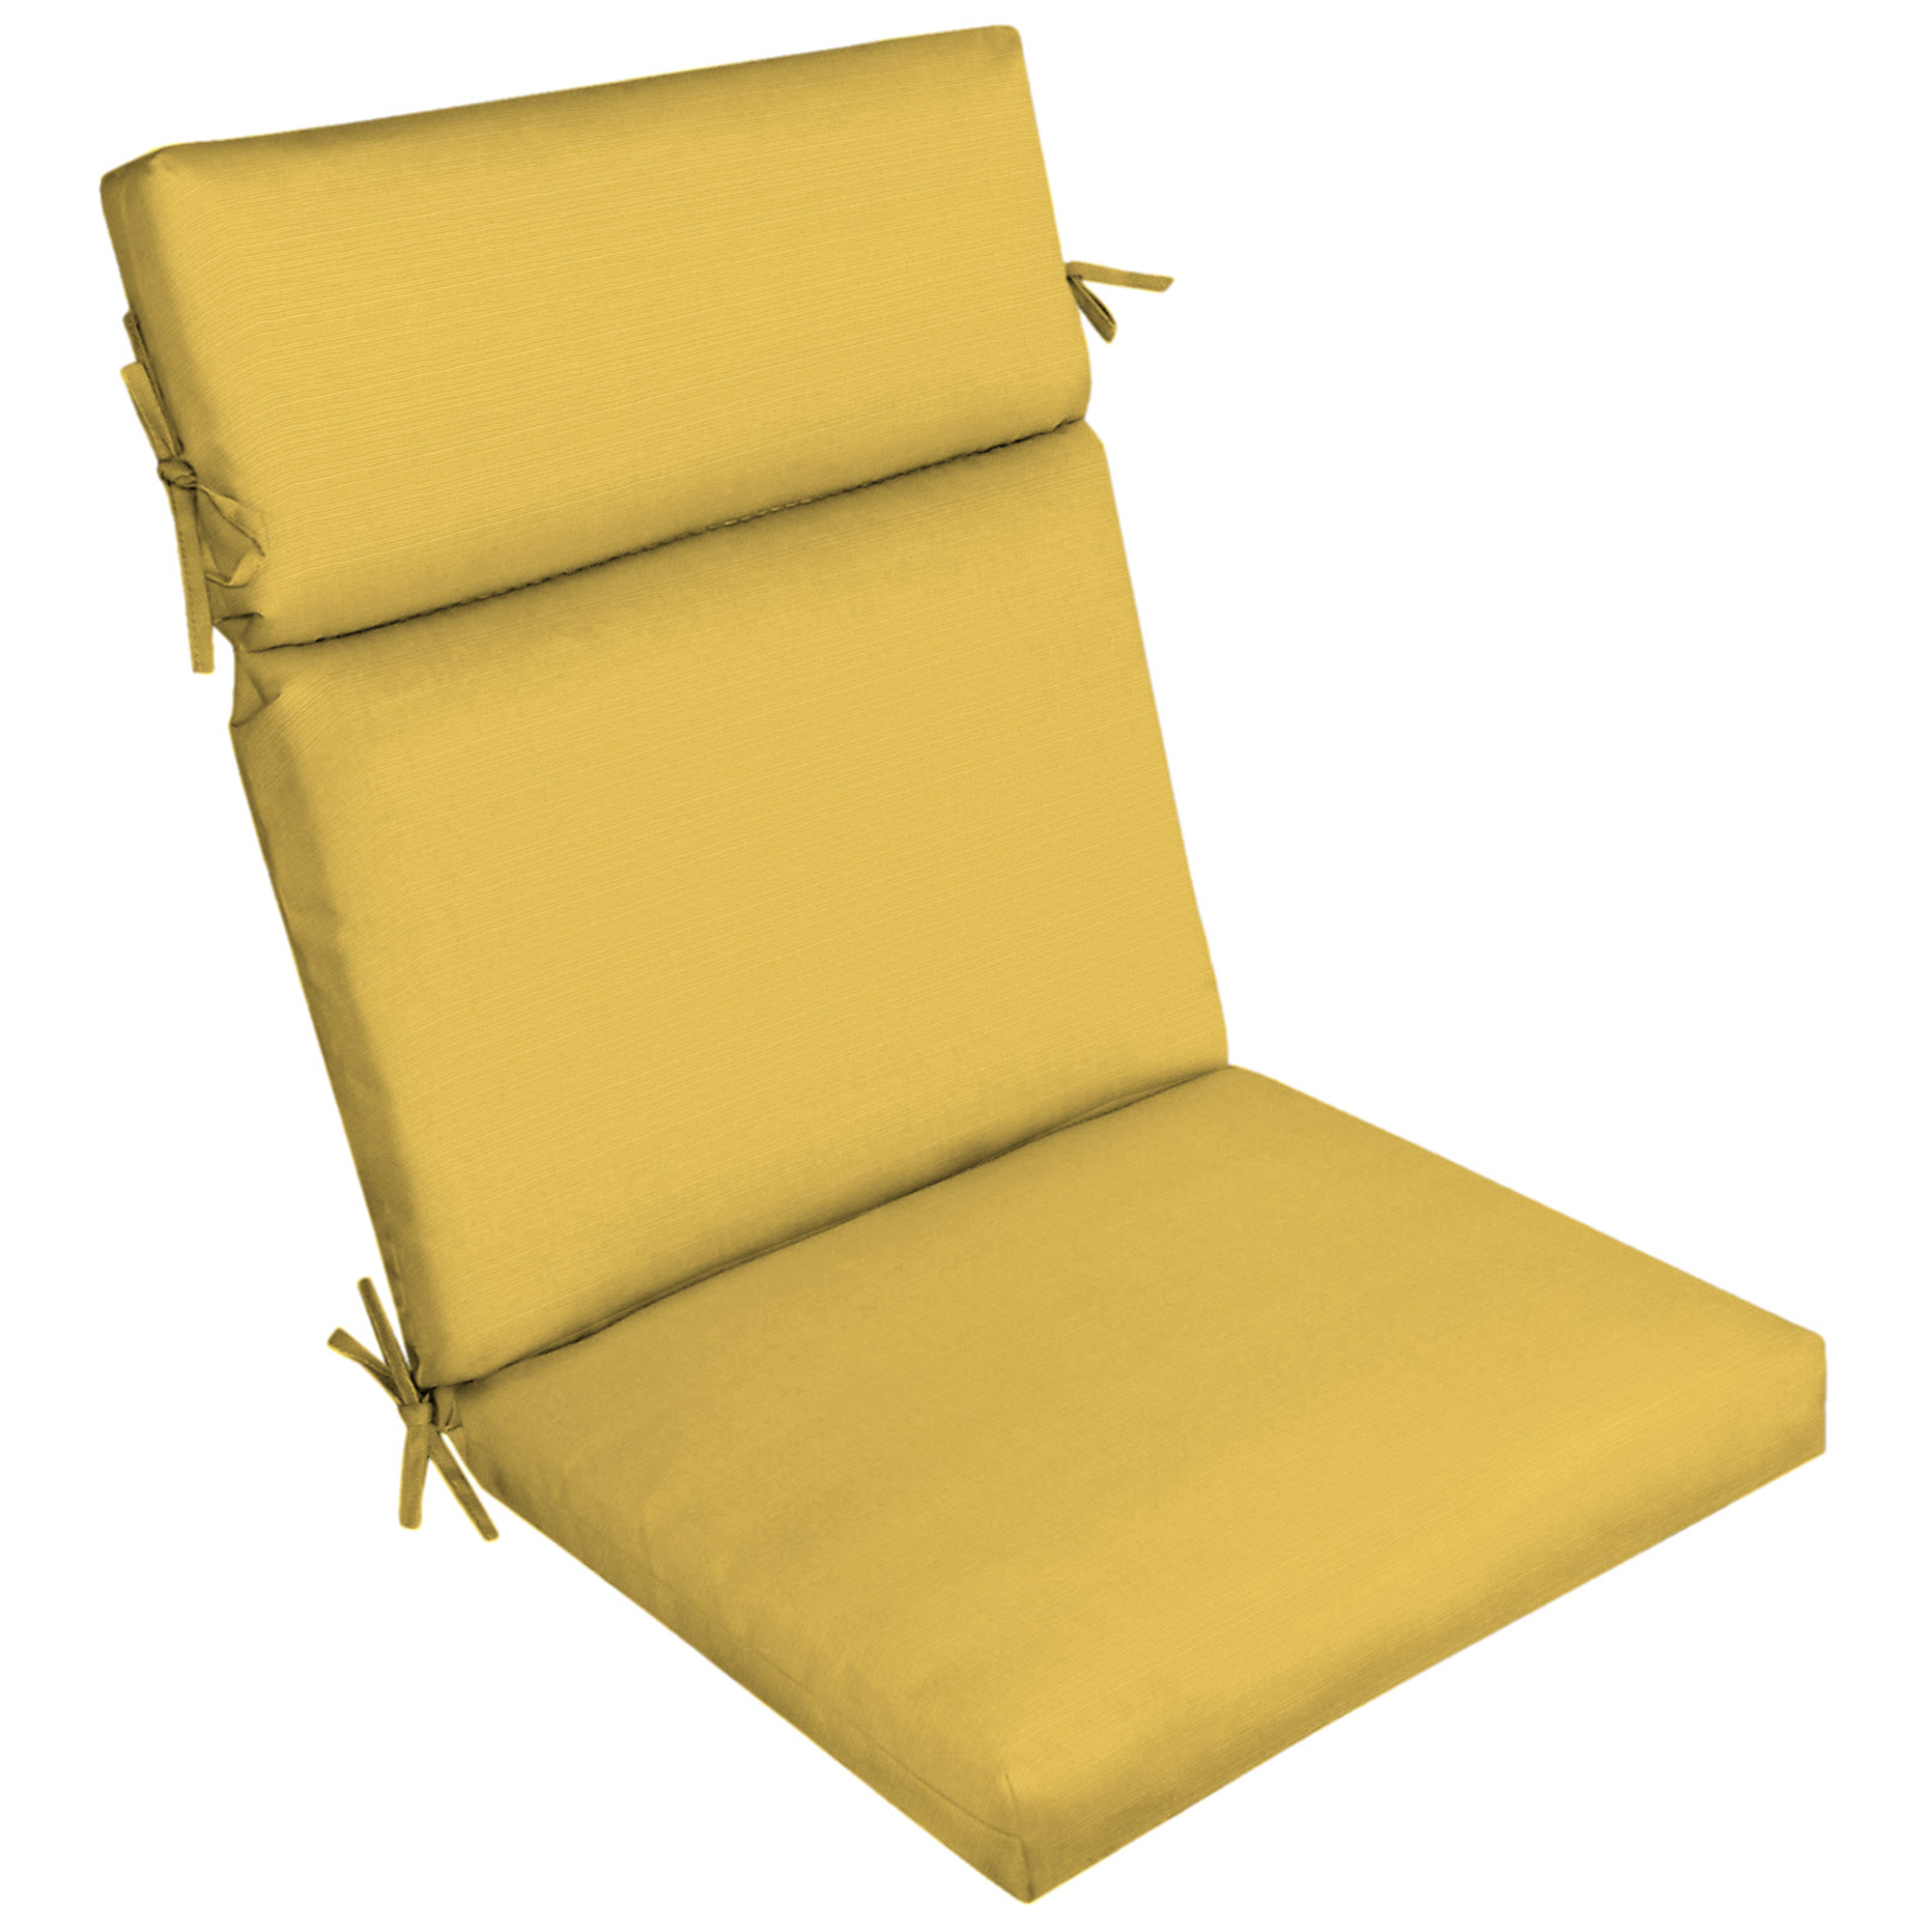 Better Homes & Gardens Navy 44 x 21 in. Outdoor Dining Chair Cushion with EnviroGuard